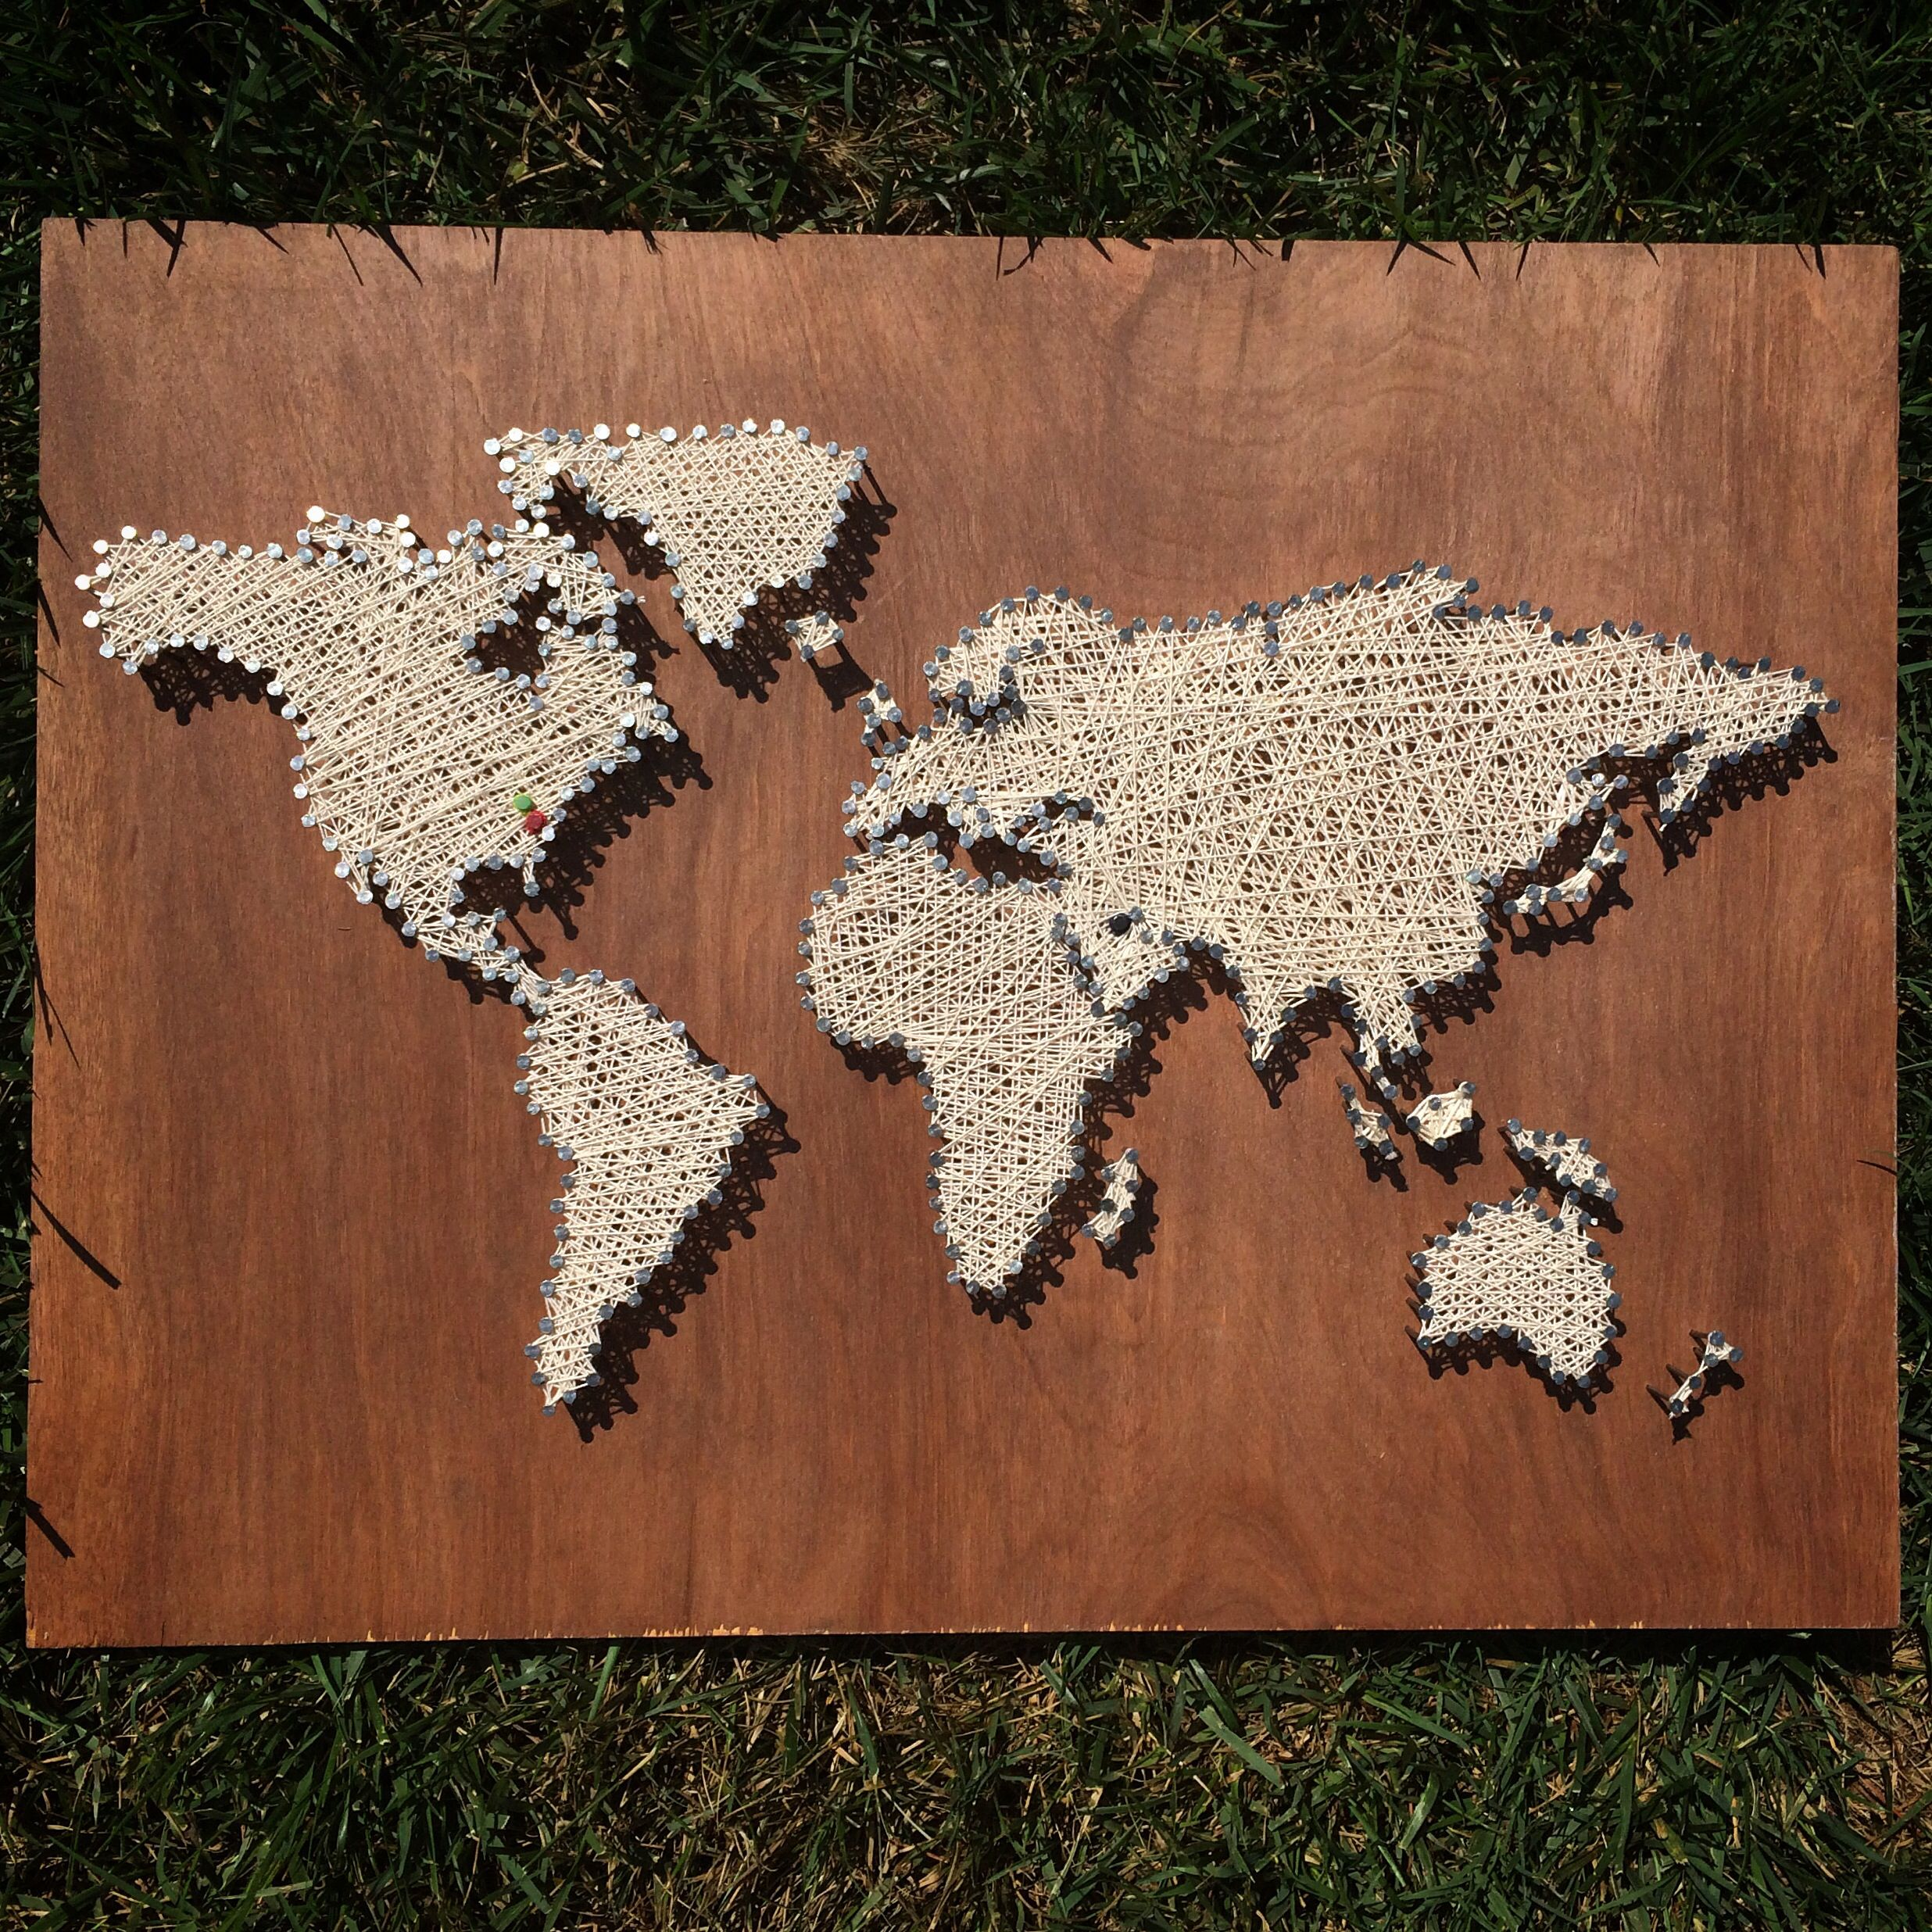 World map string art - look closely and you\'ll see colored dots over ...